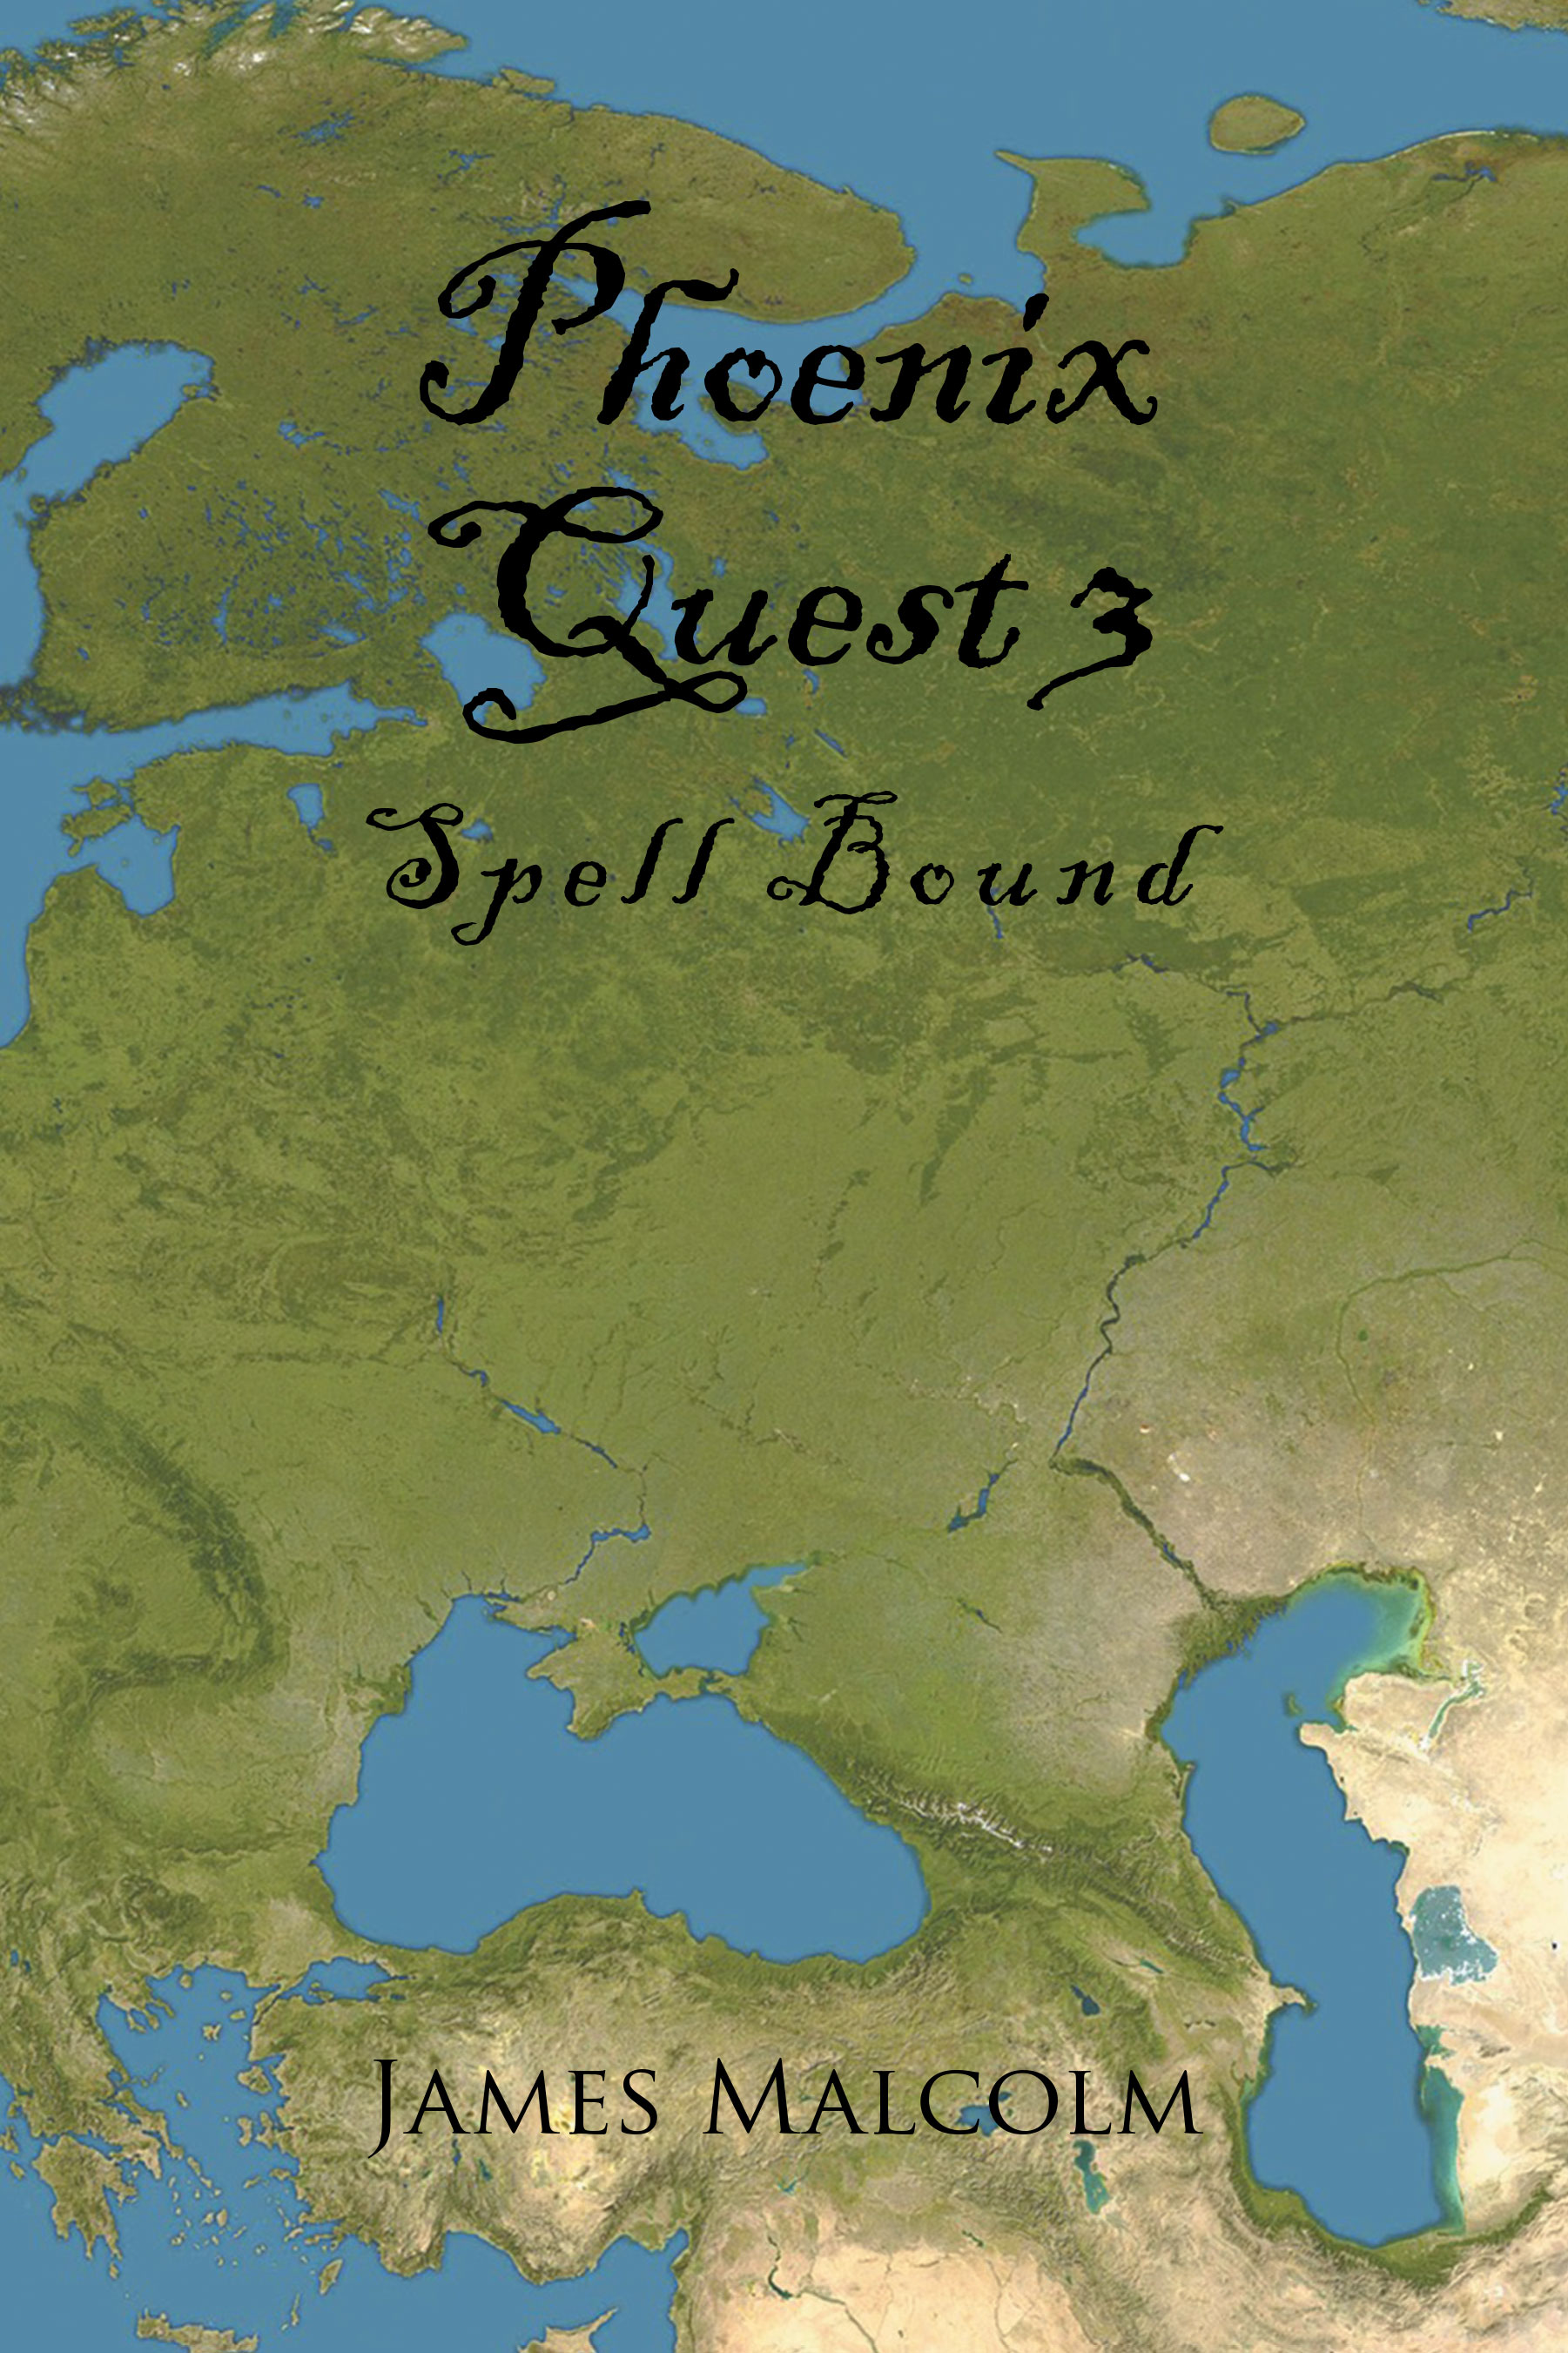 ANThology 3 Quest for a Queen